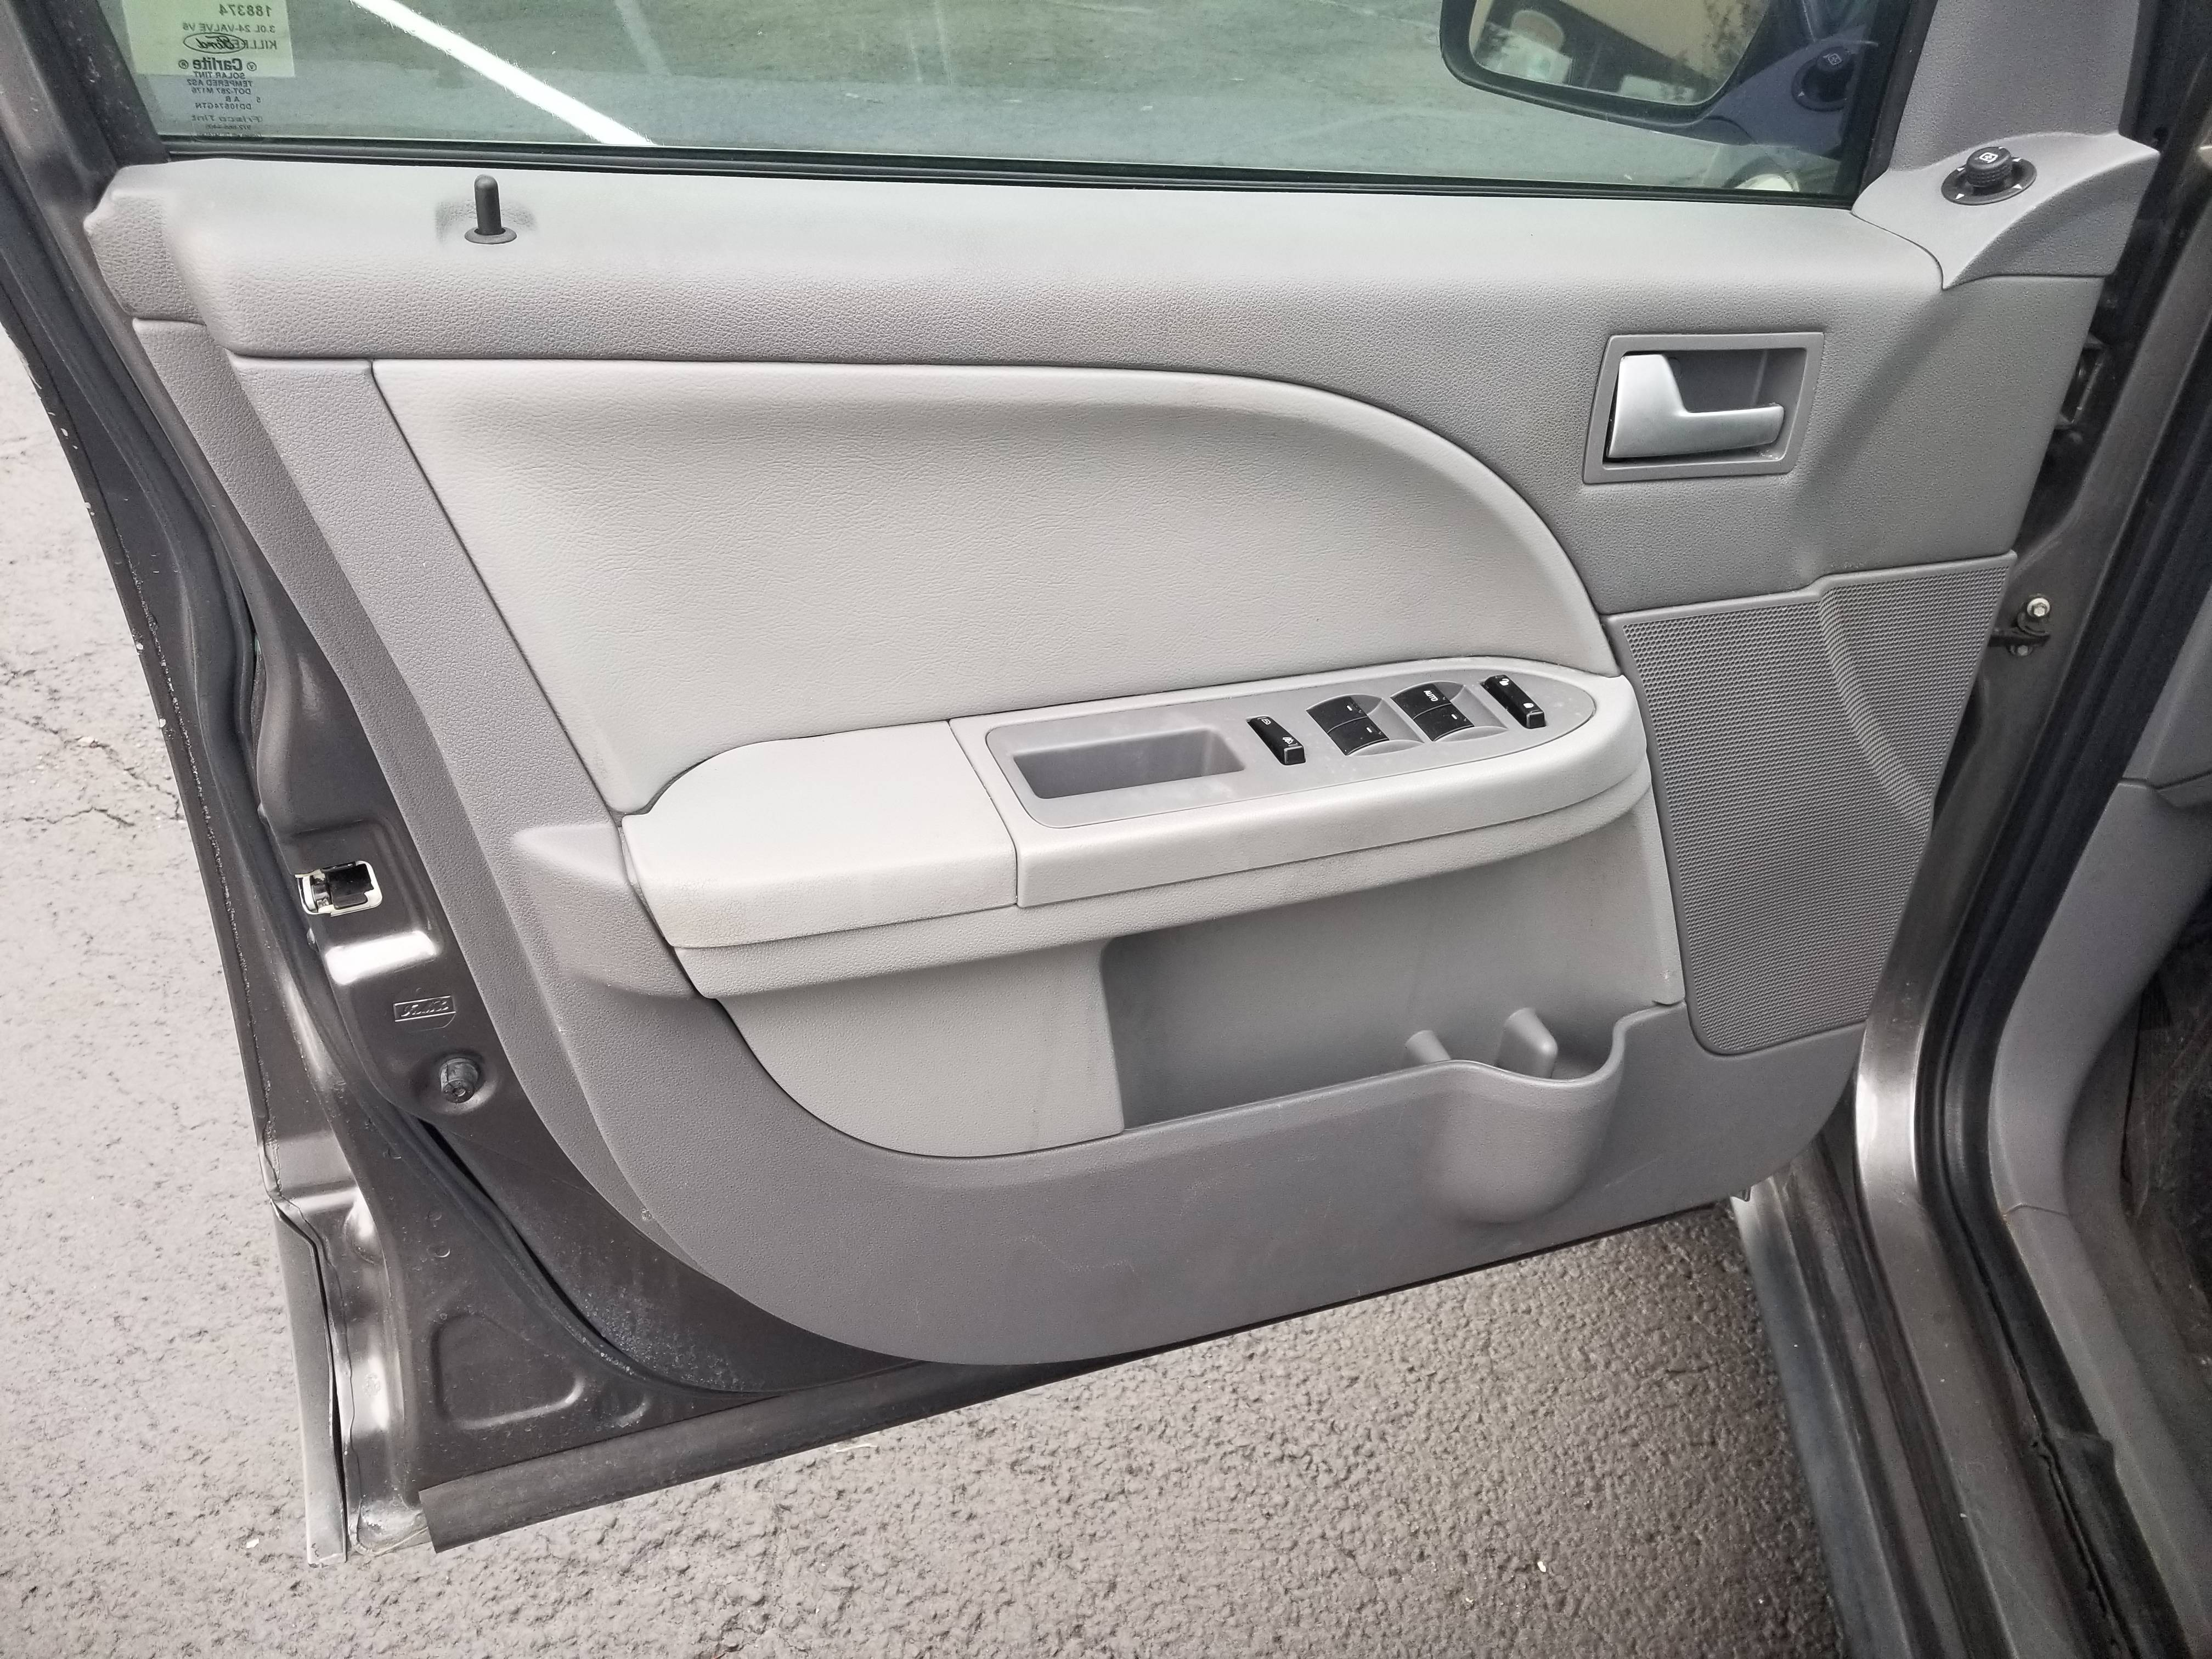 used vehicle - SUV FORD FREESTYLE 2006